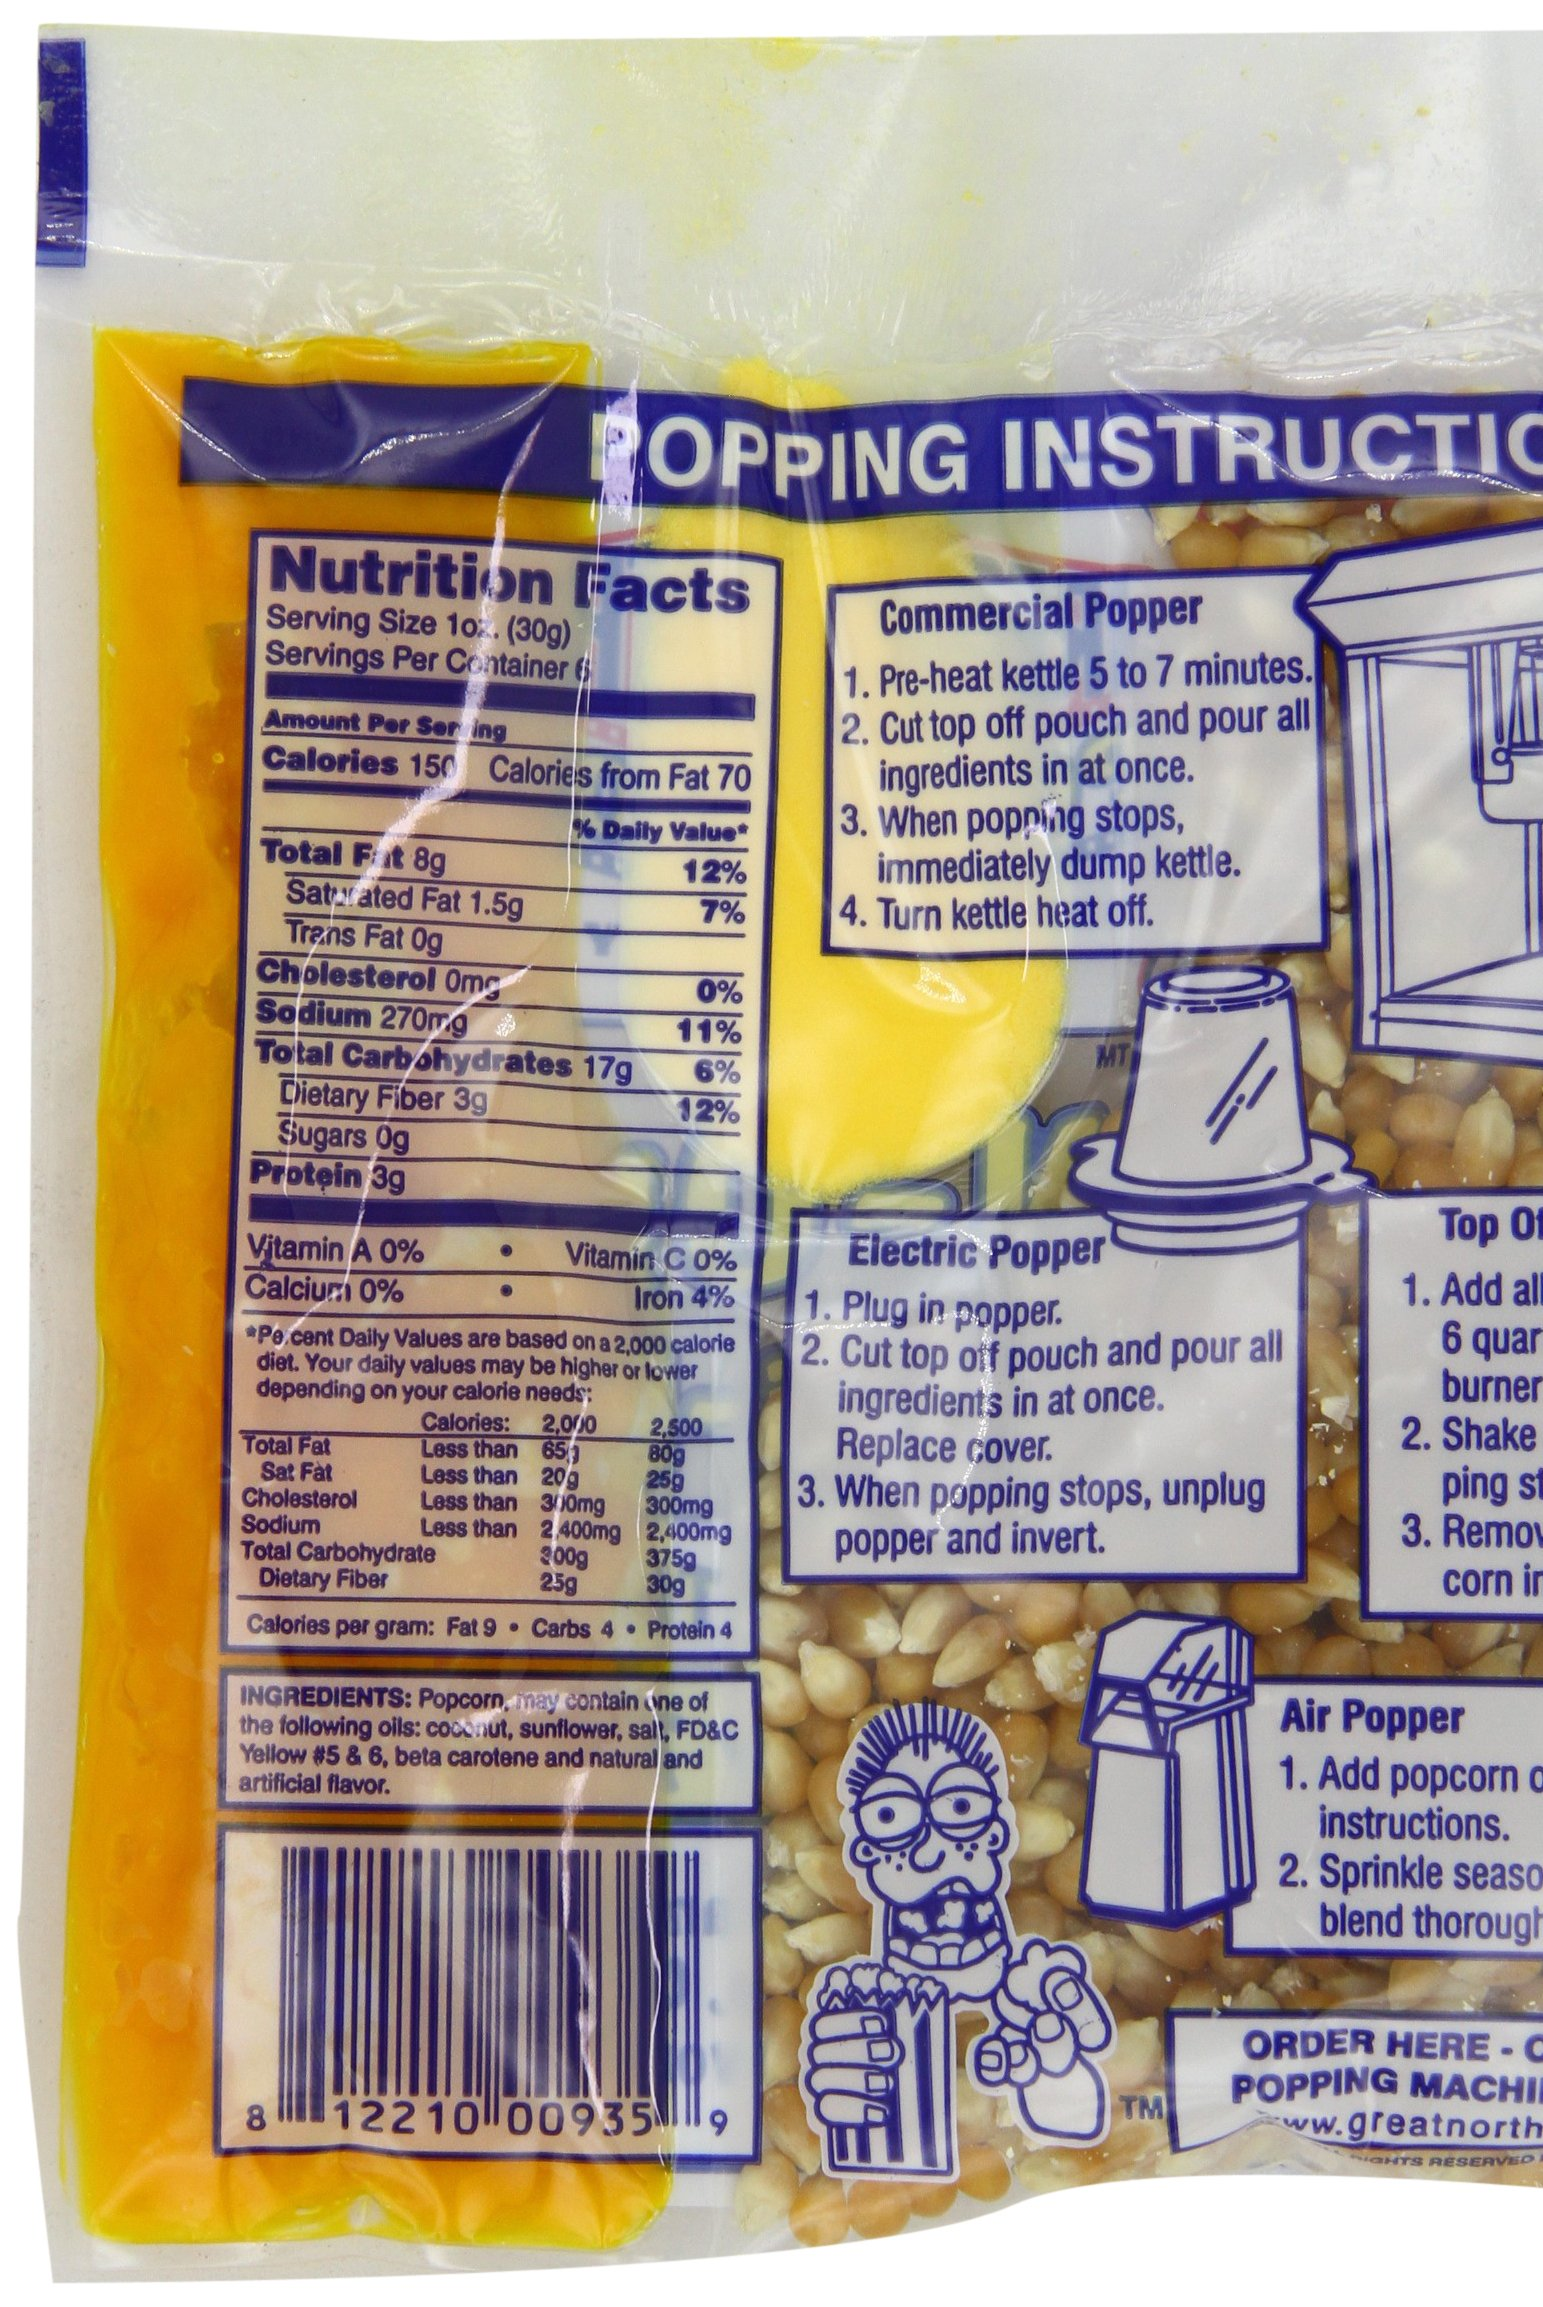 4105 Great Northern Popcorn Premium 6 Ounce Popcorn Portion Packs, CASE OF 24 by Great Northern Popcorn Company (Image #4)